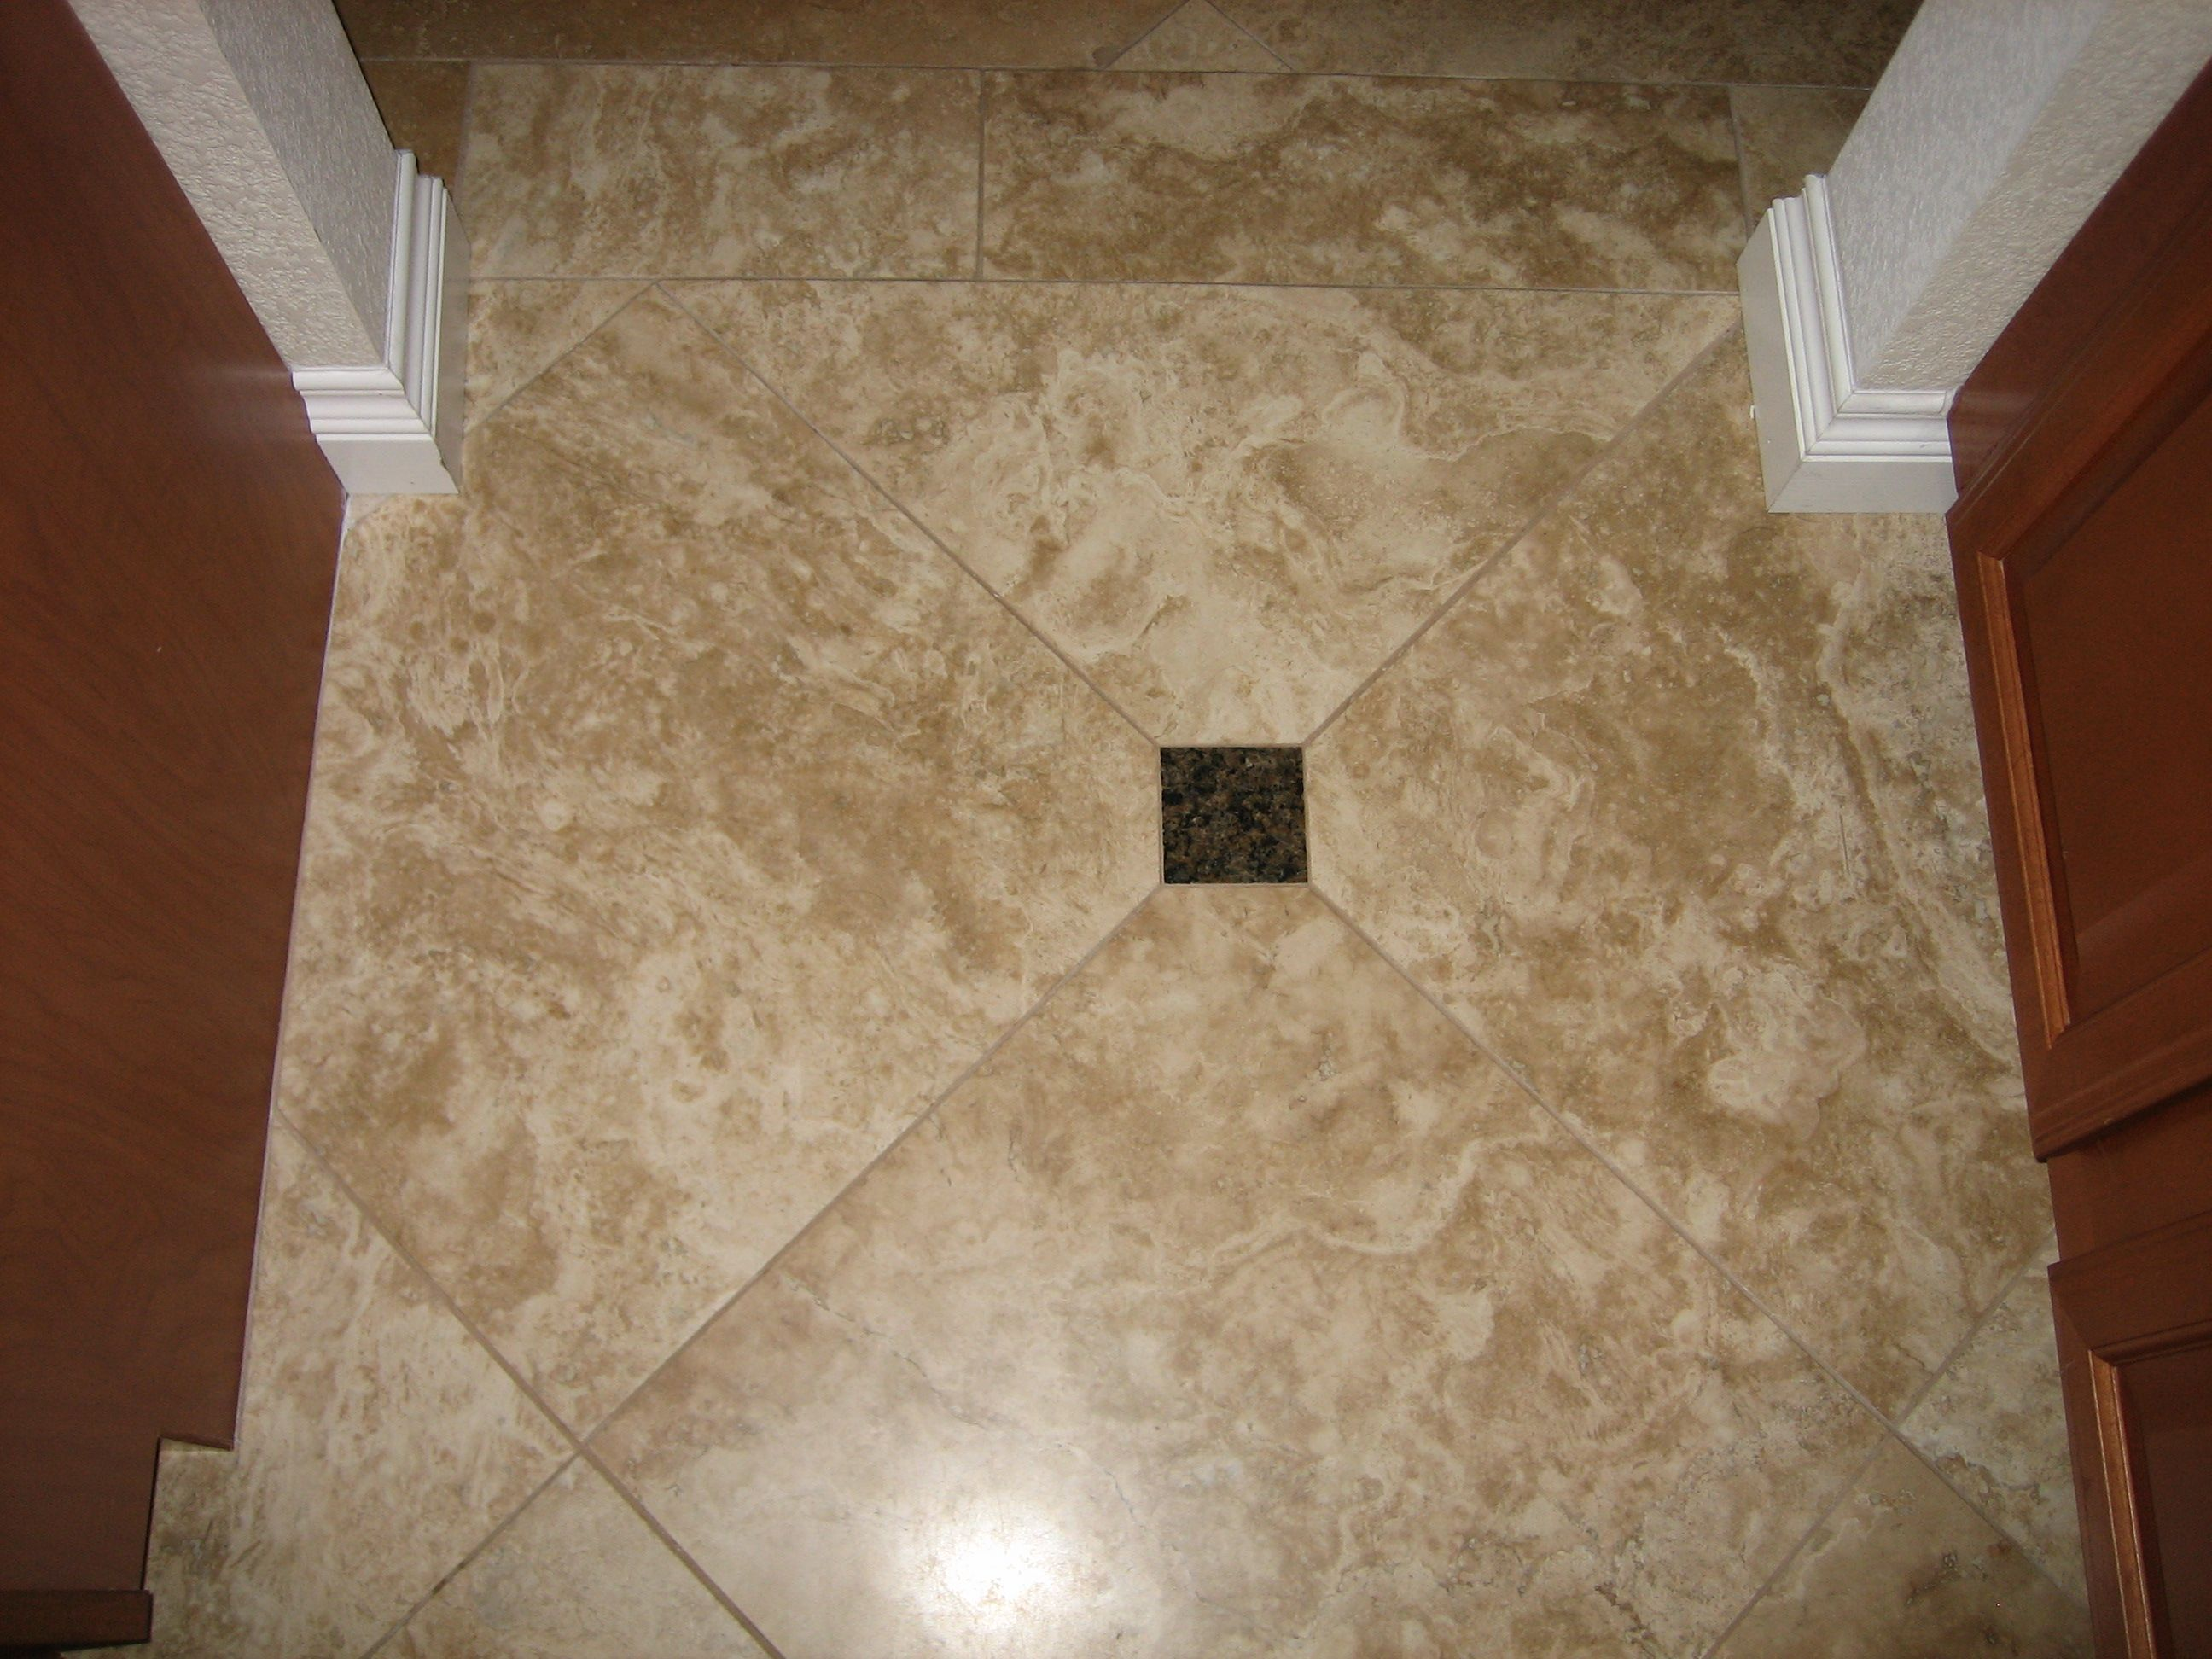 One Of Ceramic Tile Floor Designs Here Also Shows That The Use Of